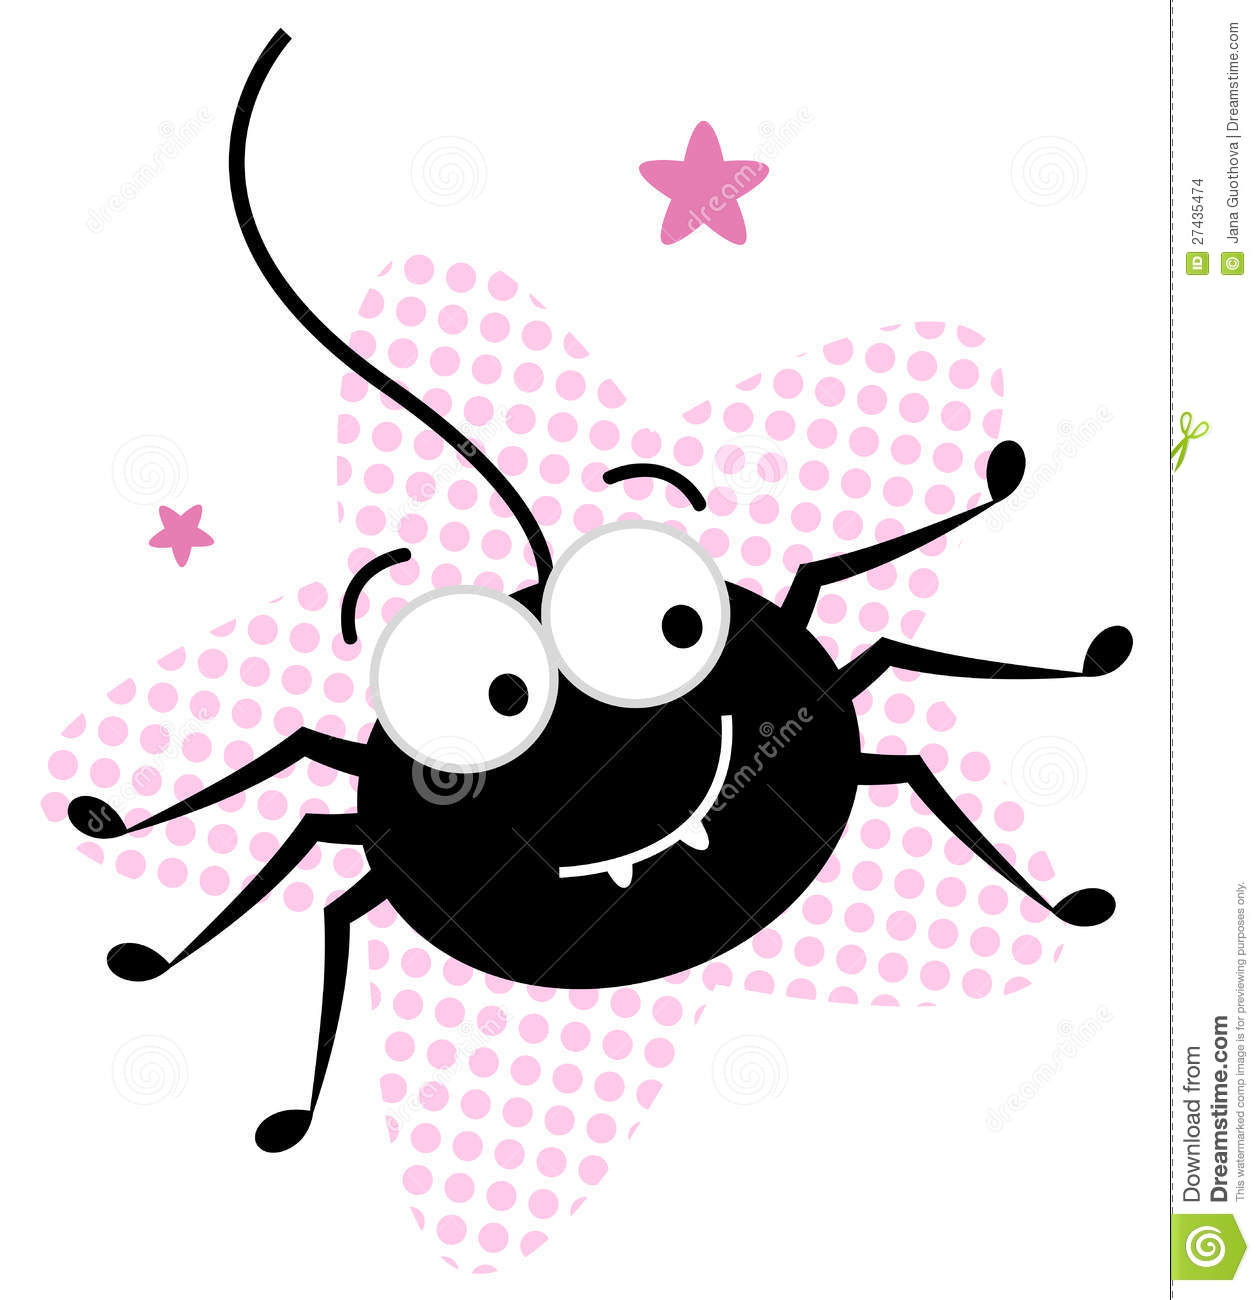 More similar stock images of cute crazy black spider in pink star